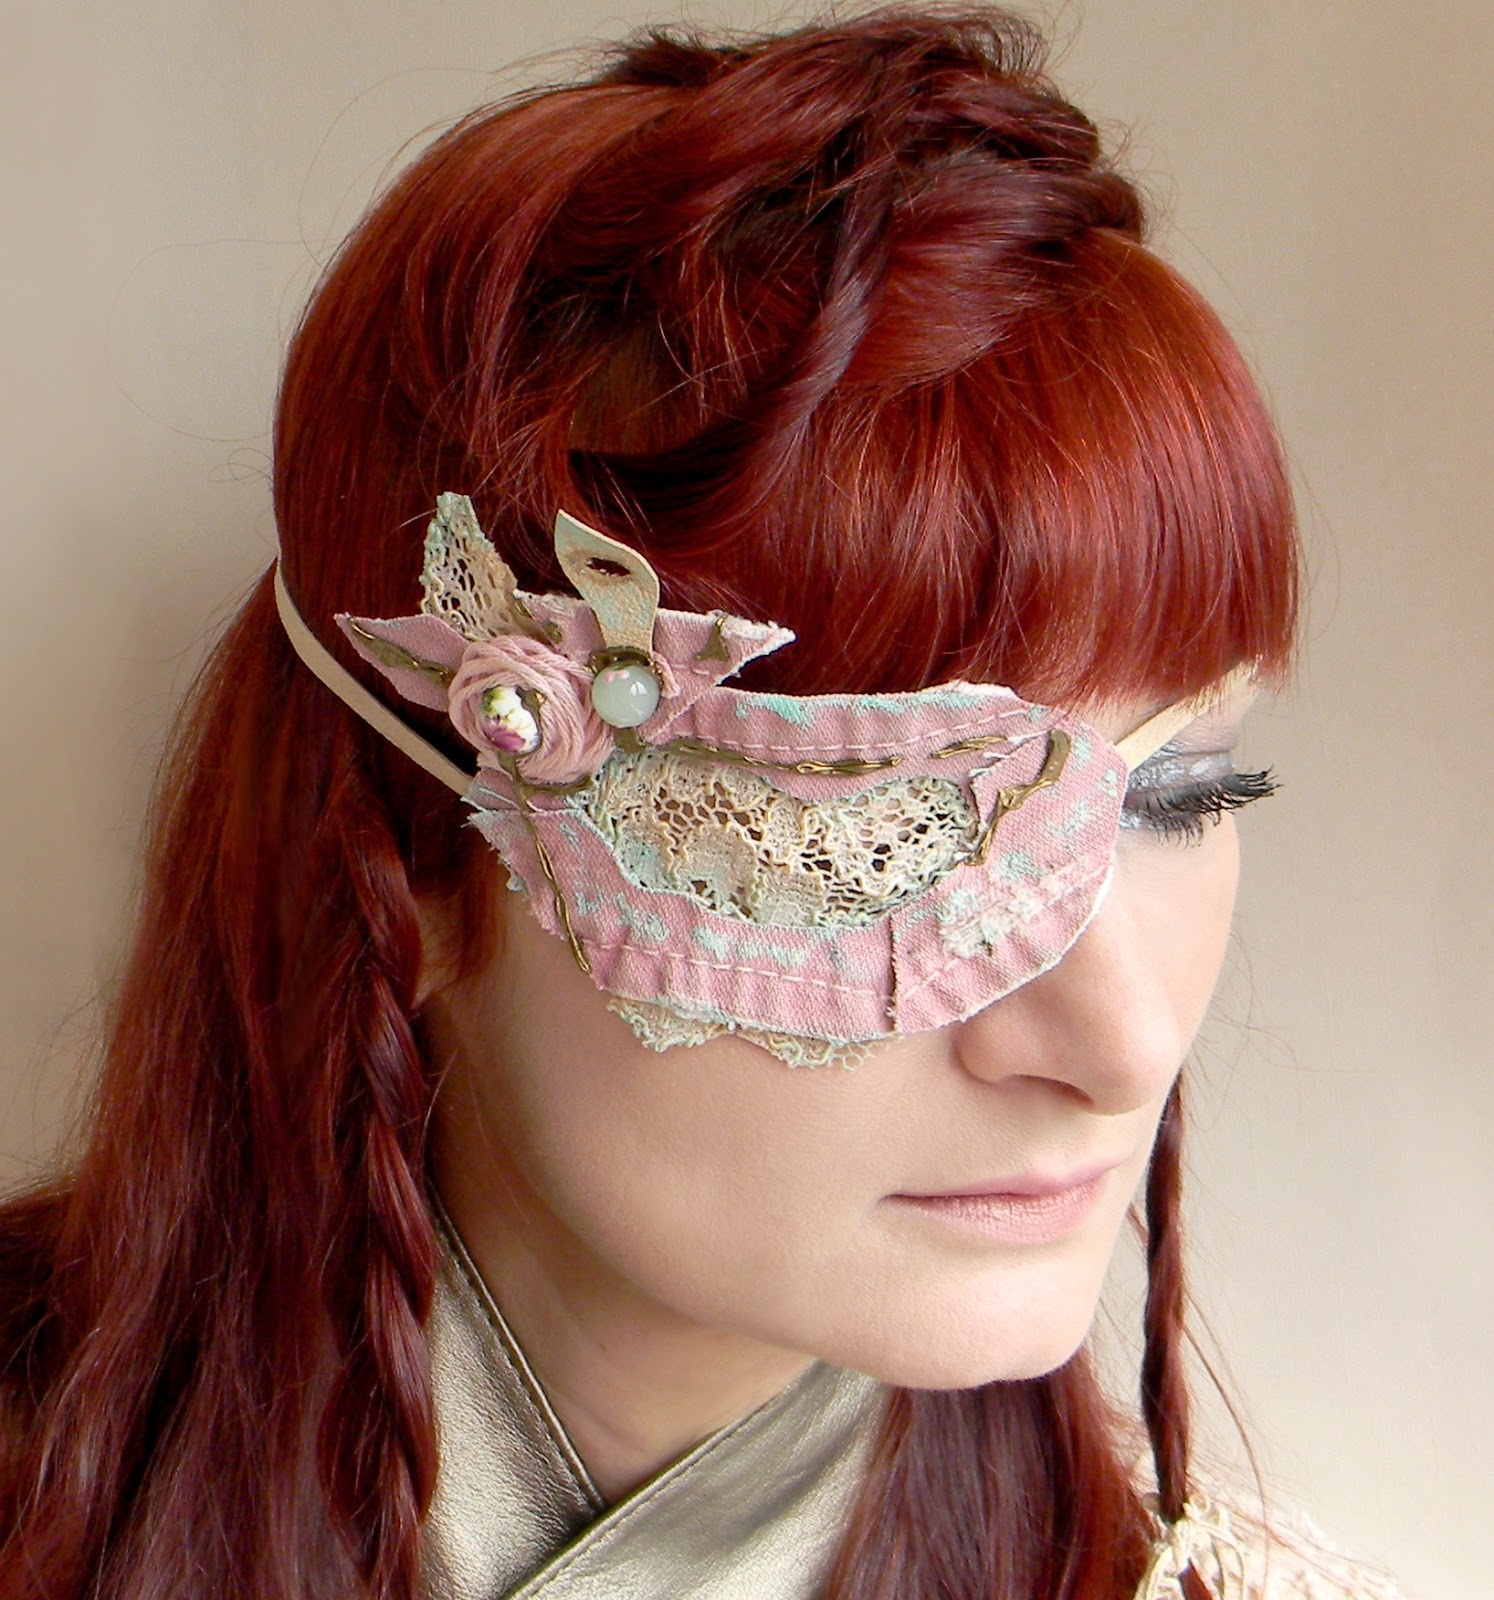 Unique Jewelry Fashion Eyewear Eye Patch Headband Handmade Shabby Fashion